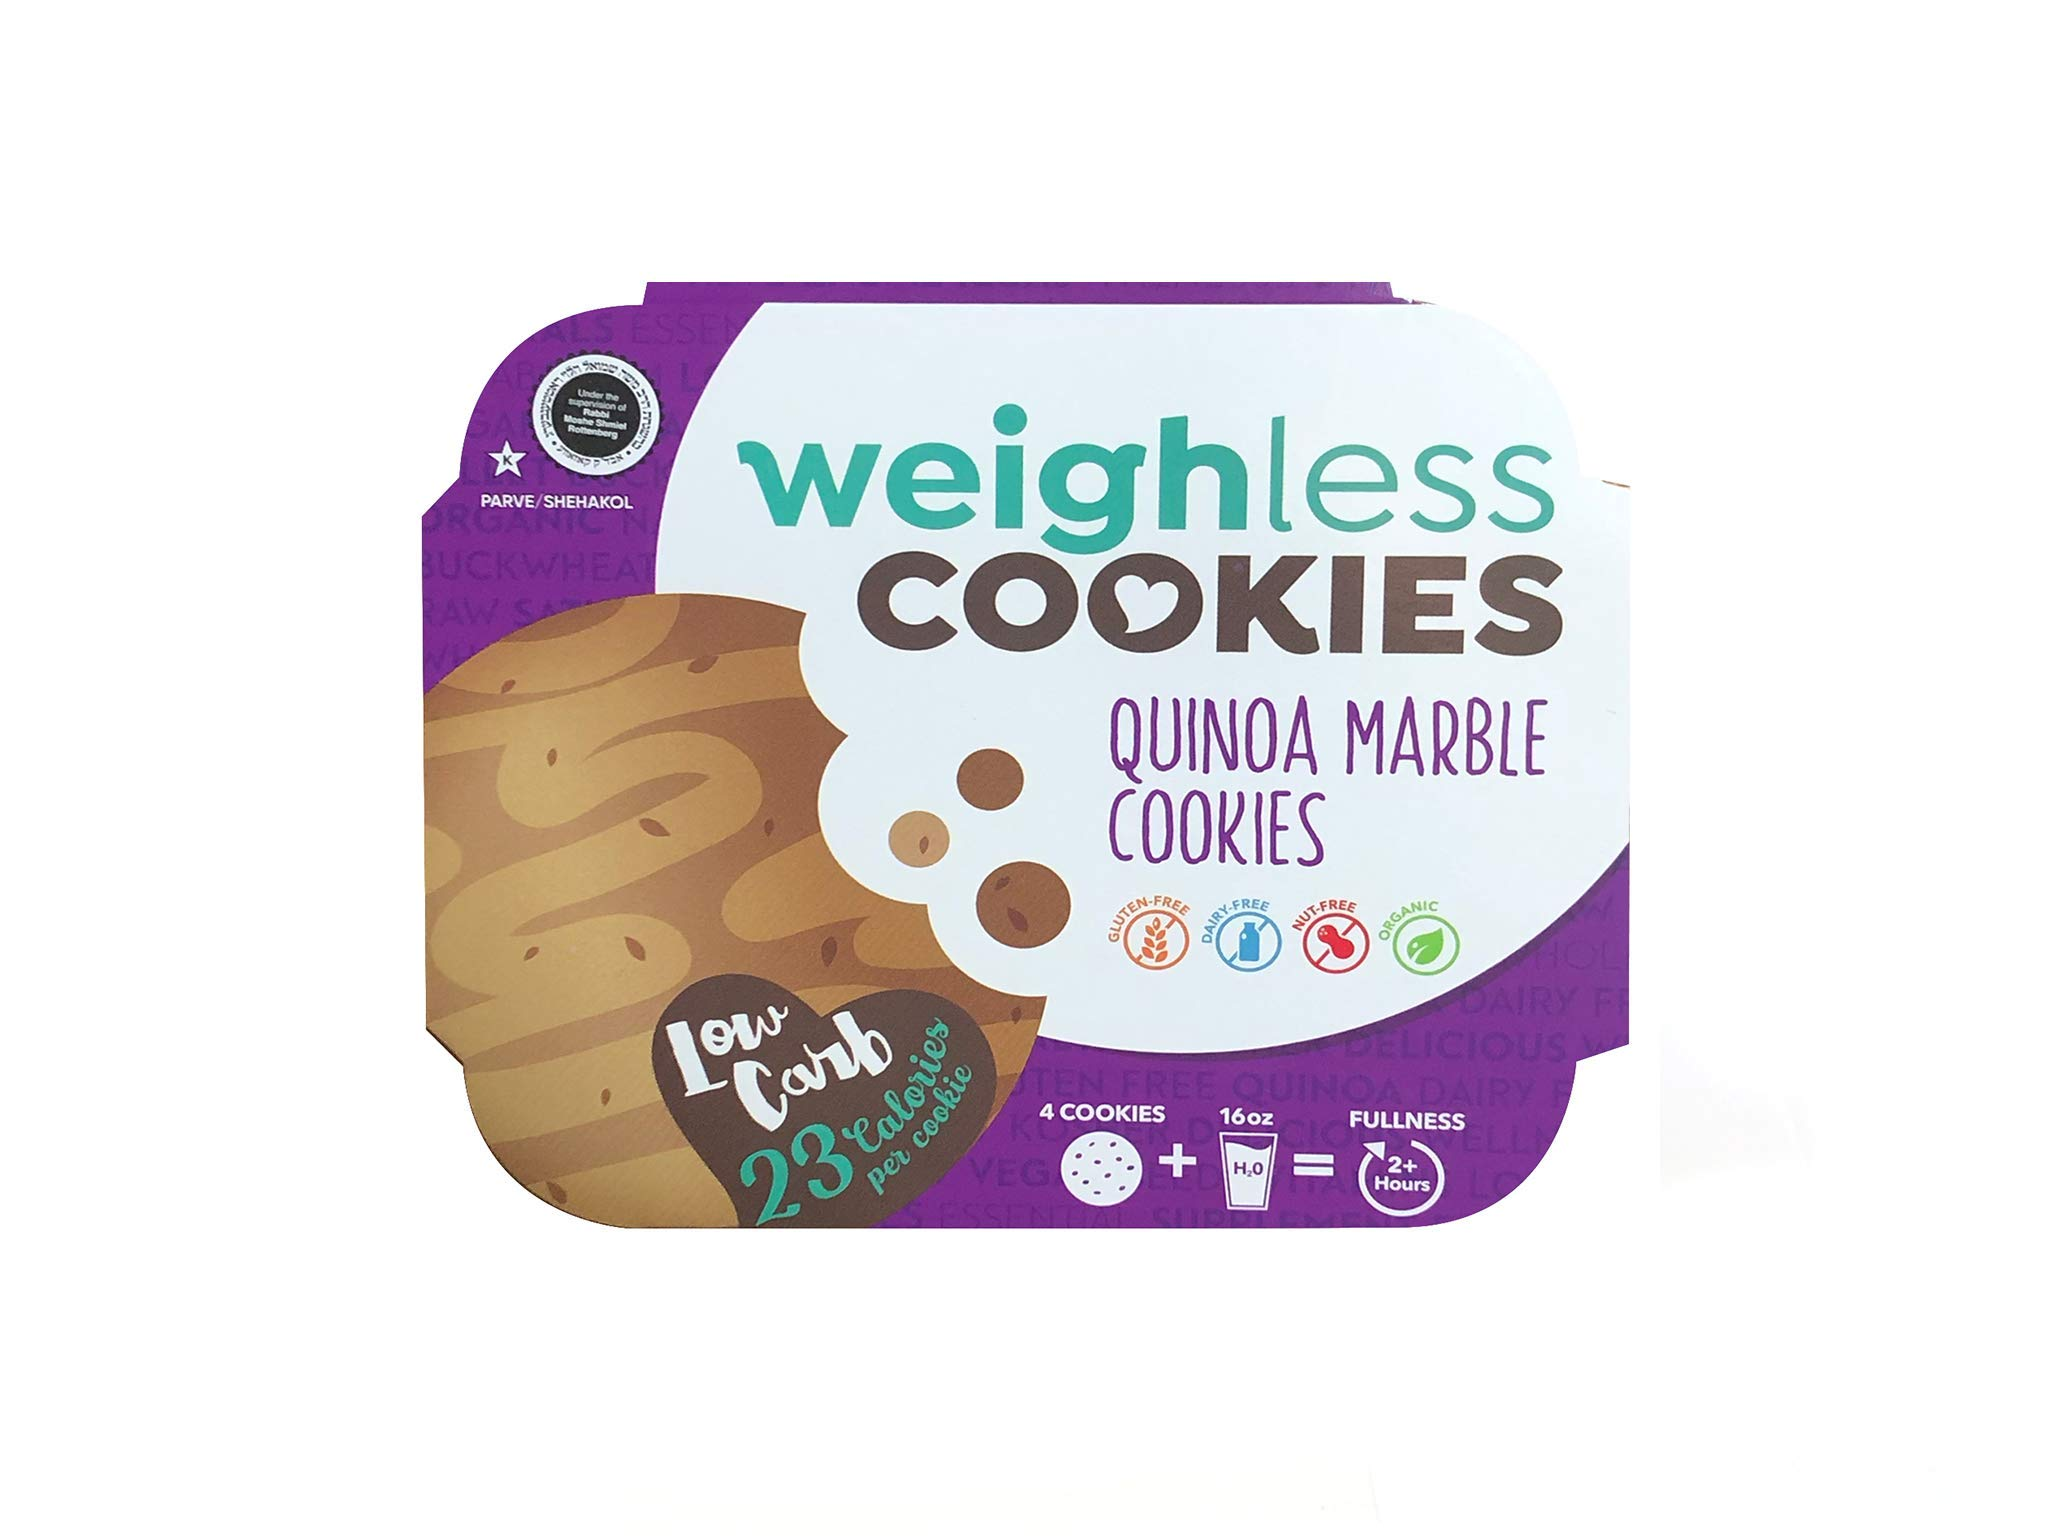 Weighless Cookies Gluten Free Low Carb Quinoa Marble - 6 Pack case by Weighless Cookies